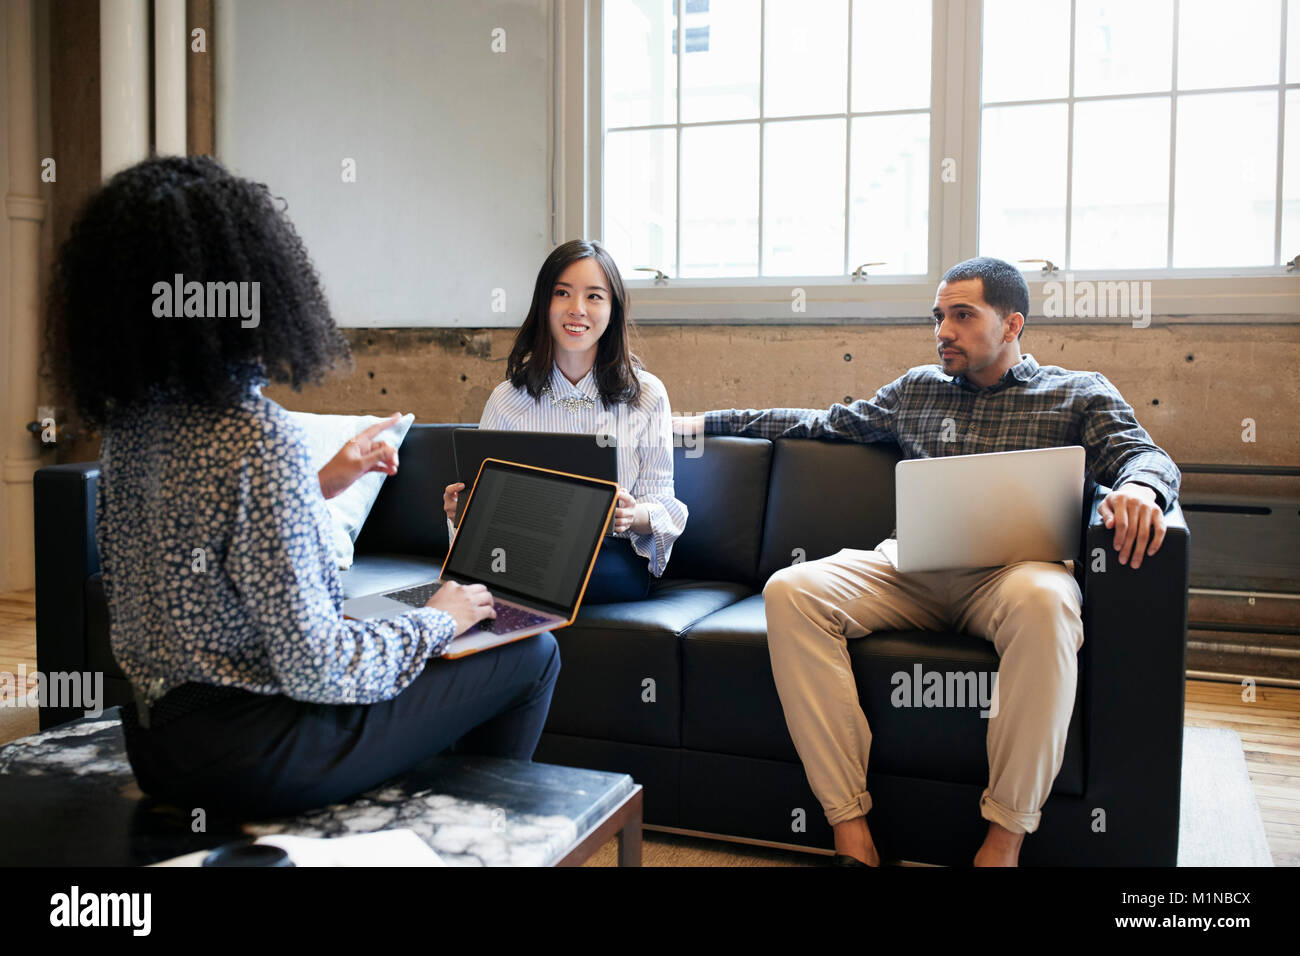 Three young colleagues with laptops at a casual work meeting - Stock Image